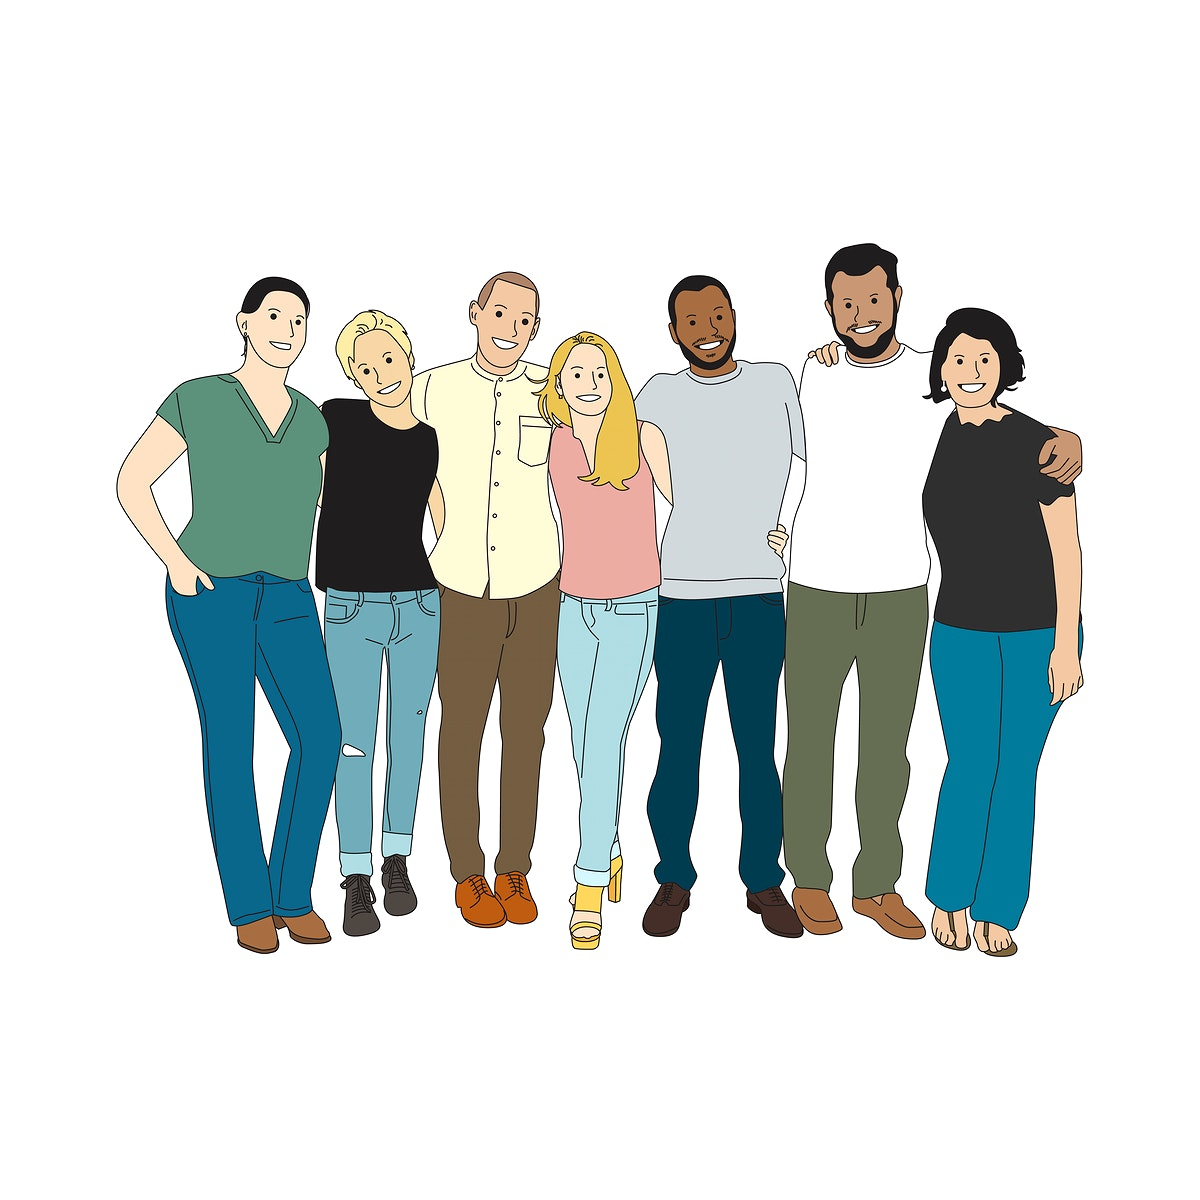 Illustration of diverse people arms around each other